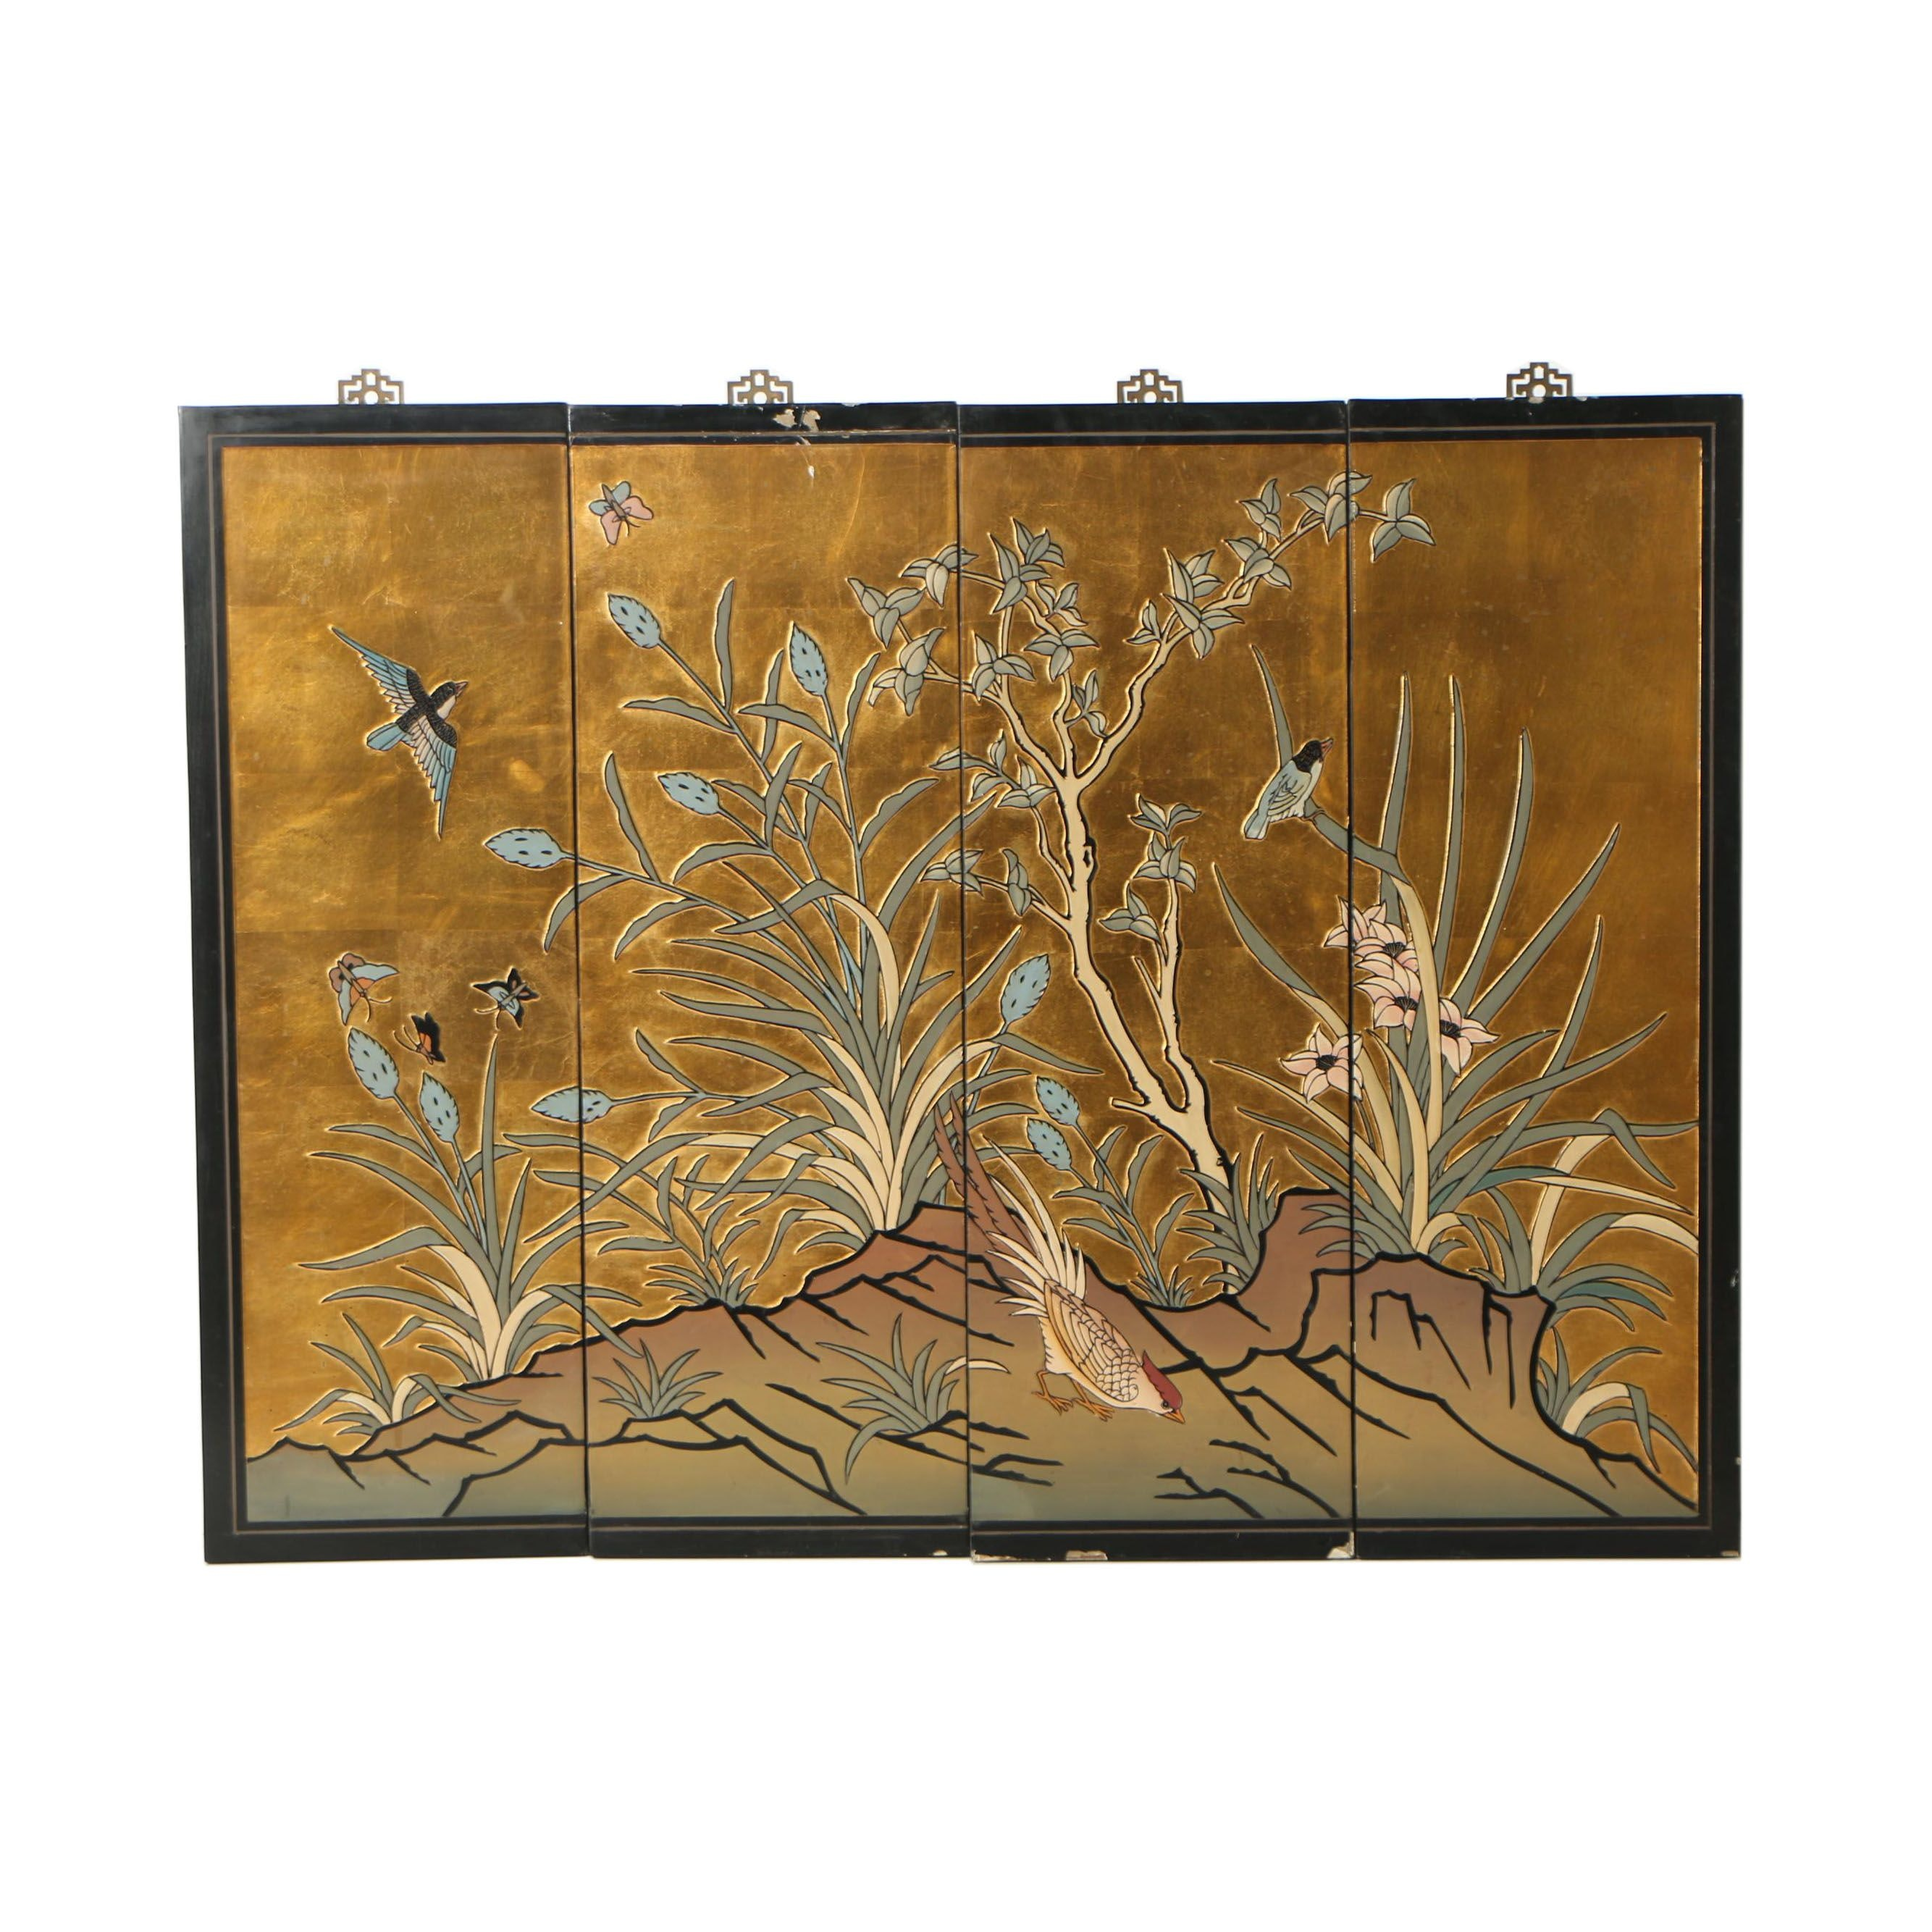 Chinese Gilt Coromandel Hand-Painted Carved Wood Panels